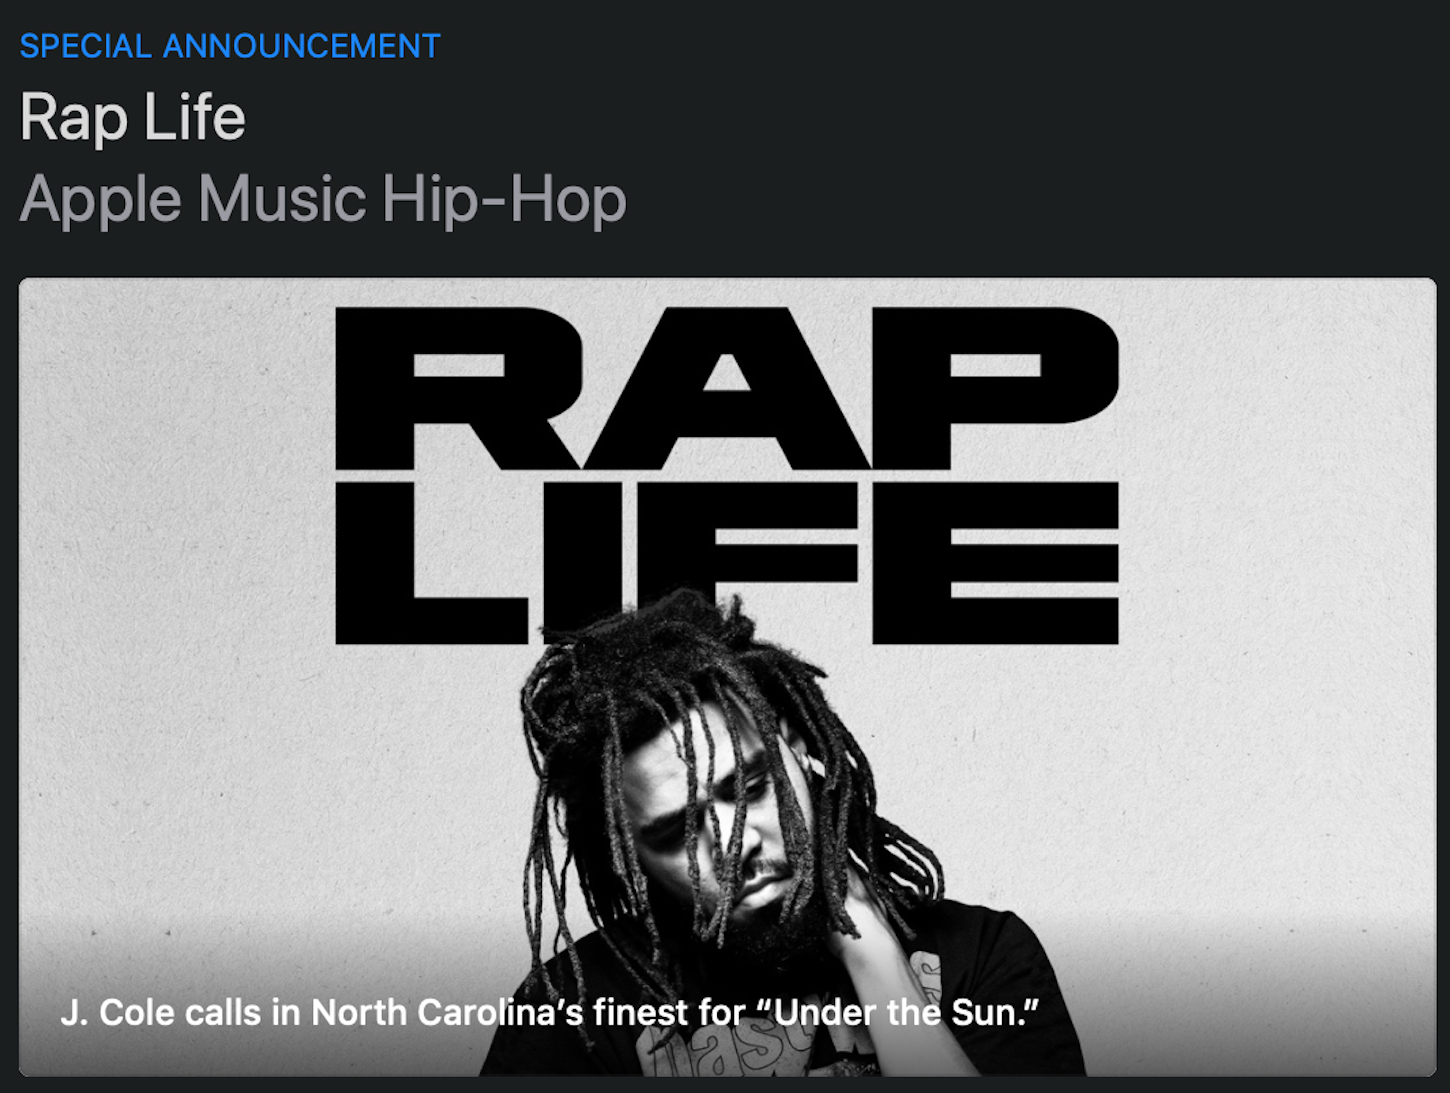 Apple Music rebrands 'The A-List: Hip-Hop' playlist to 'Rap